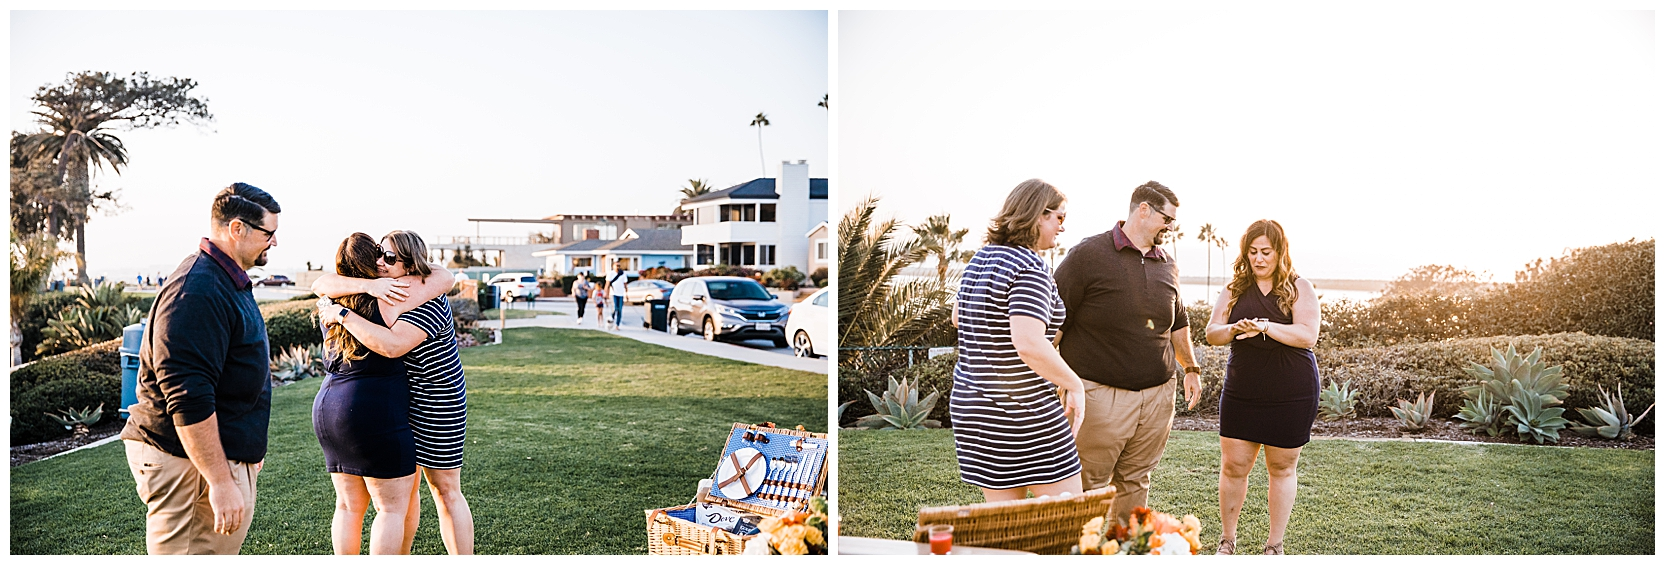 jessicafredericks_huntingtonbeach_proposal_sunset_engagement_0013.jpg